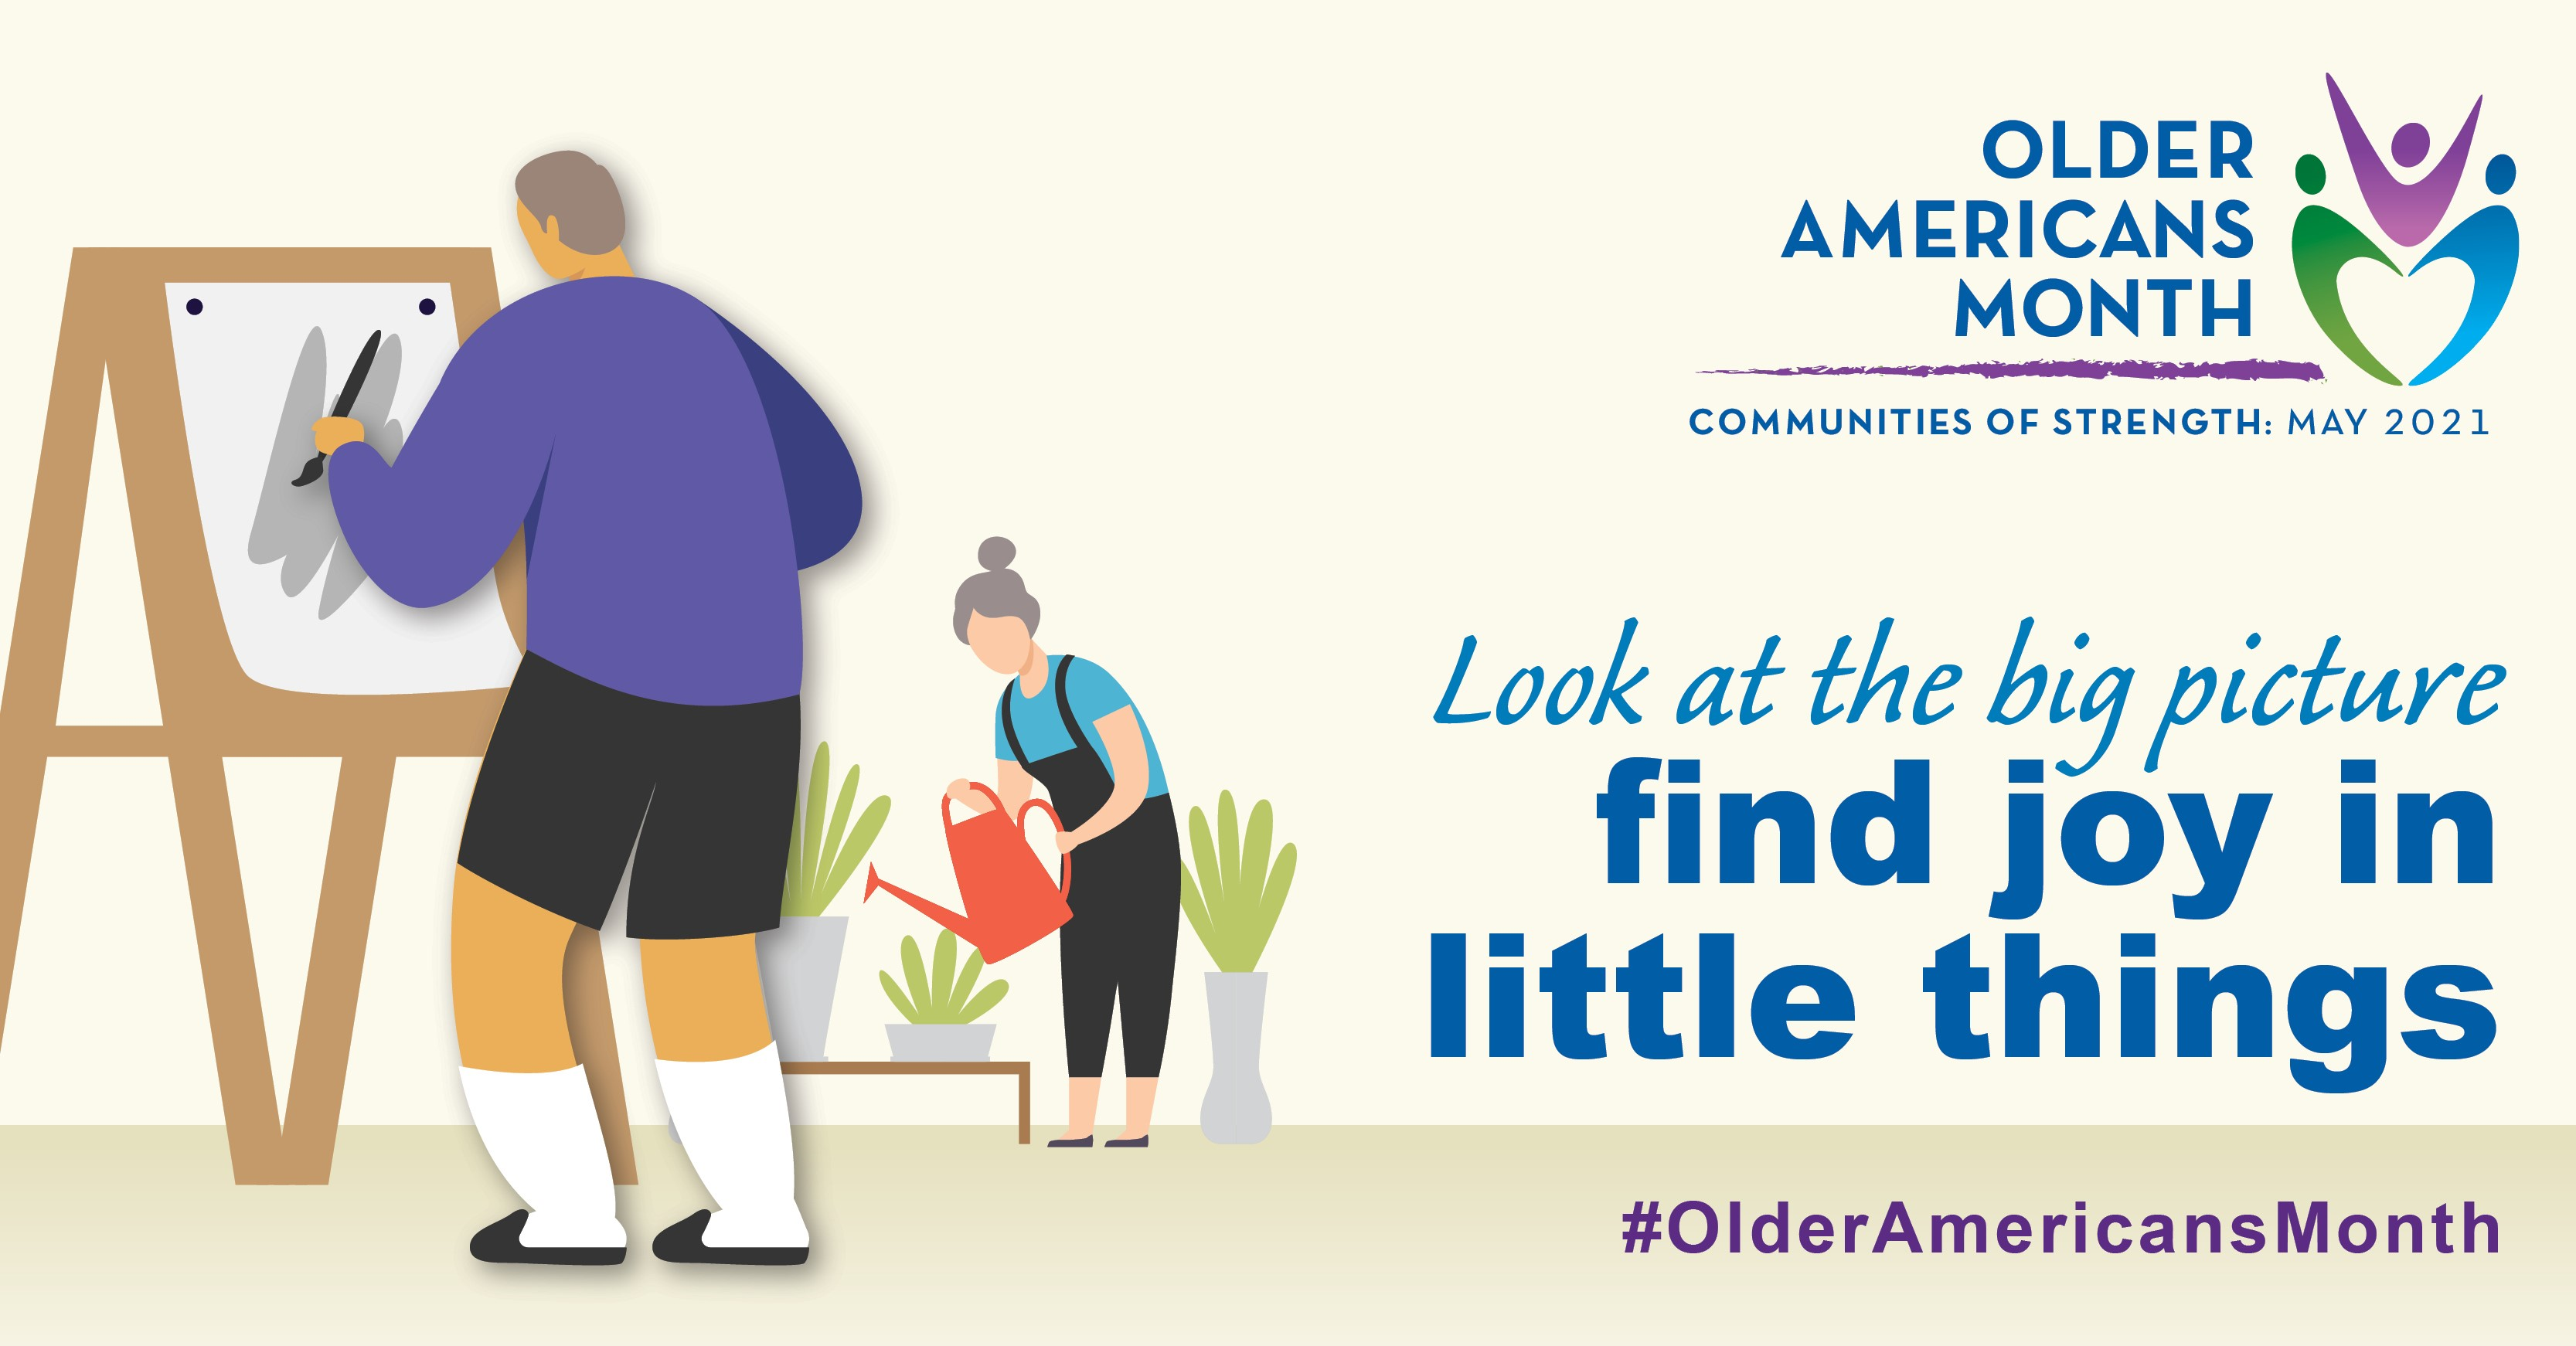 Social Media Graphic: Communities of Strength, Older Americans Month, May 2021. Look at the big picture, find joy in the little things. #OlderAmericansMonth